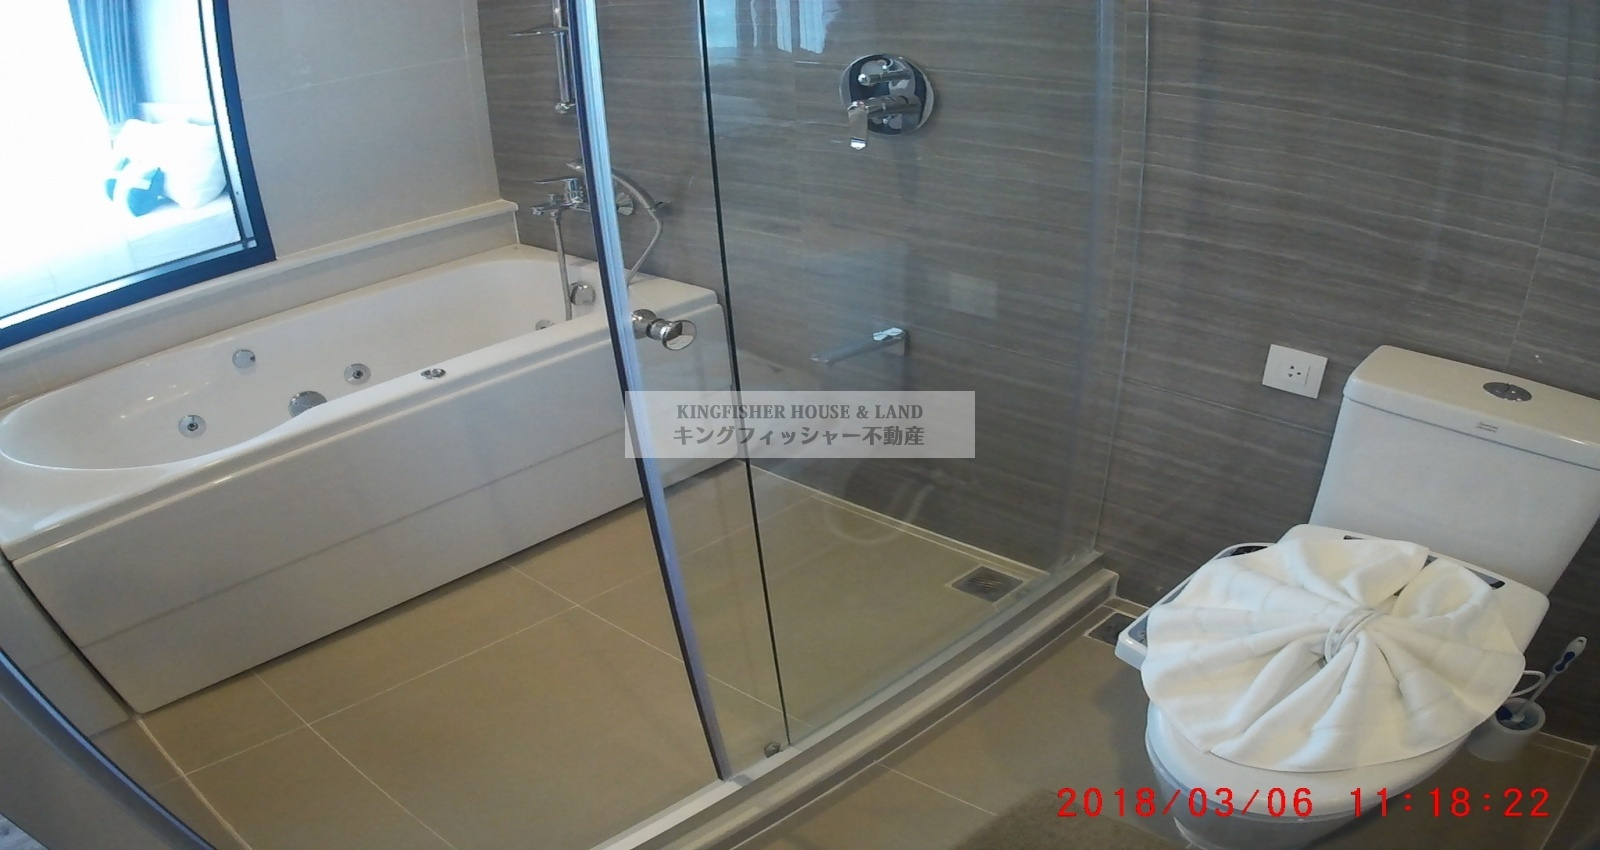 1 Bedrooms, Condominium, For Rent, 1 Bathrooms, Listing ID 1220, Sriracha, Thailand, 20110,